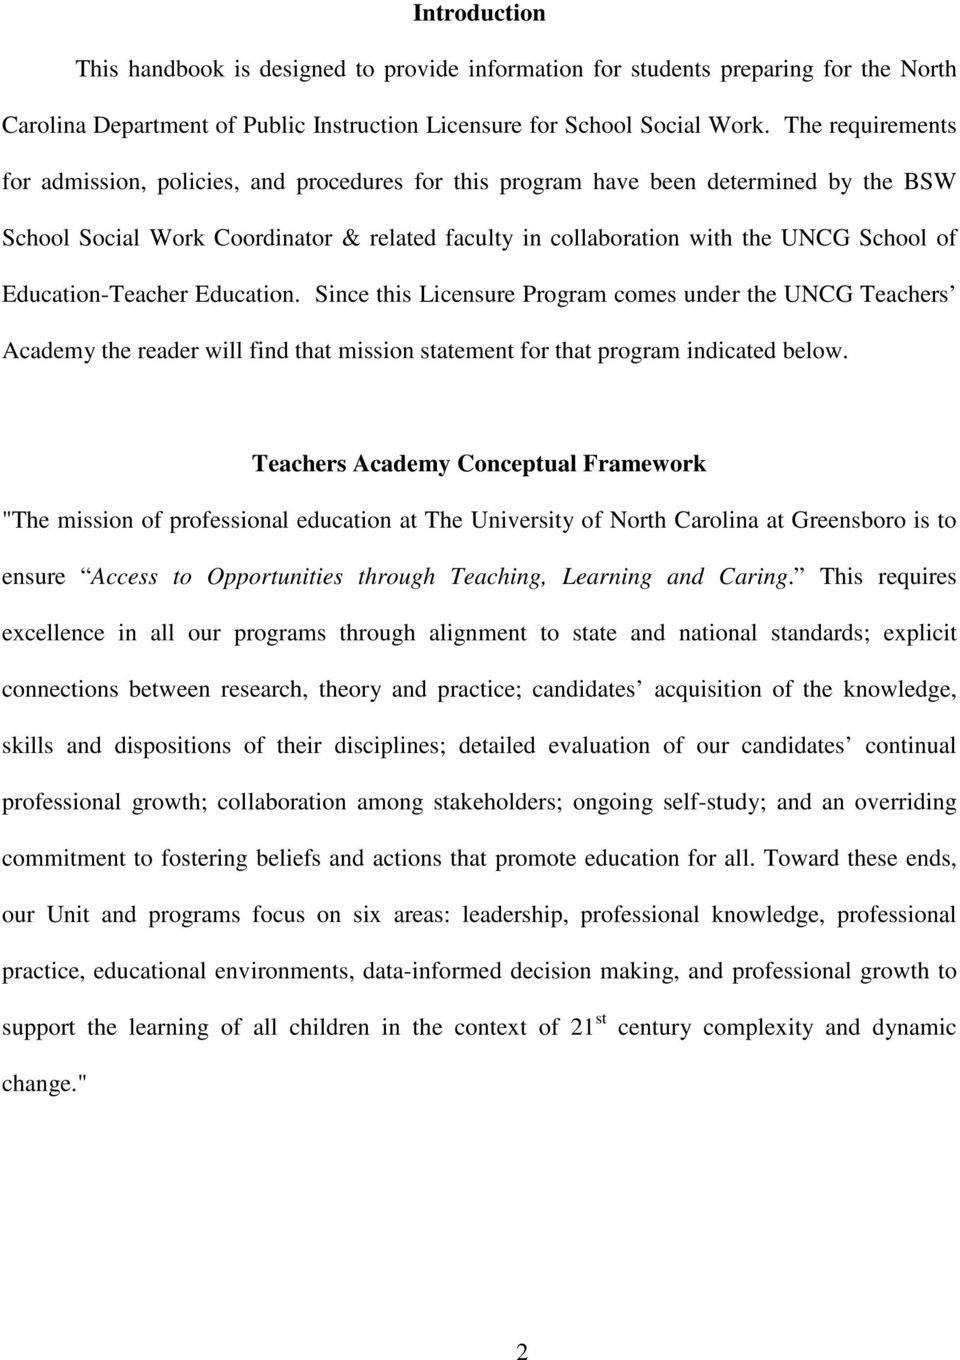 Education-Teacher Education. Since this Licensure Program comes under the UNCG Teachers Academy the reader will find that mission statement for that program indicated below.